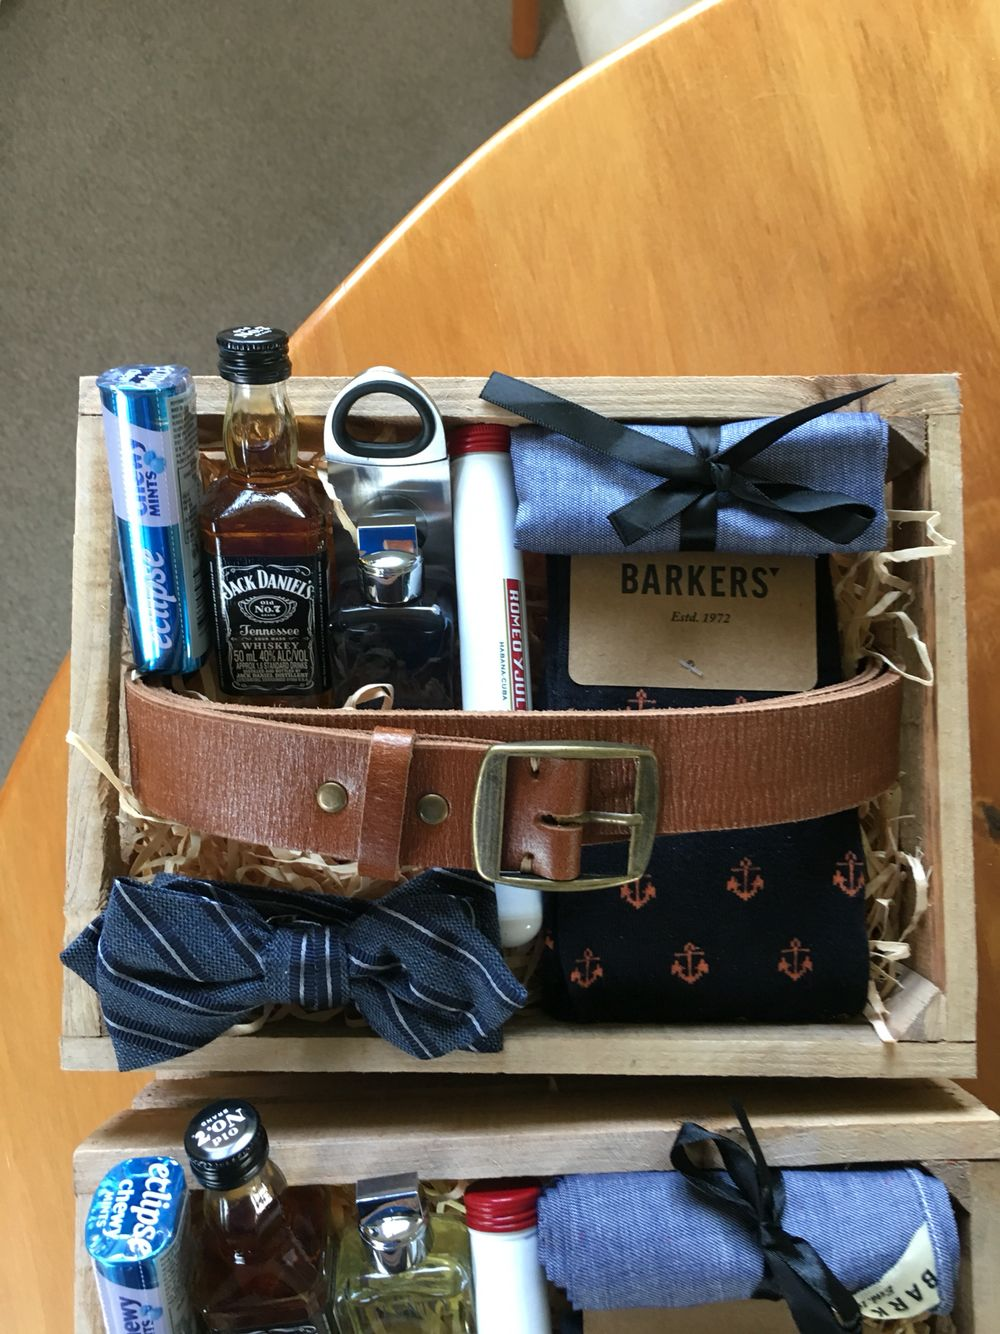 Wonderful 30 Manly Groomsmen Gifts Ideas For Your Buddies